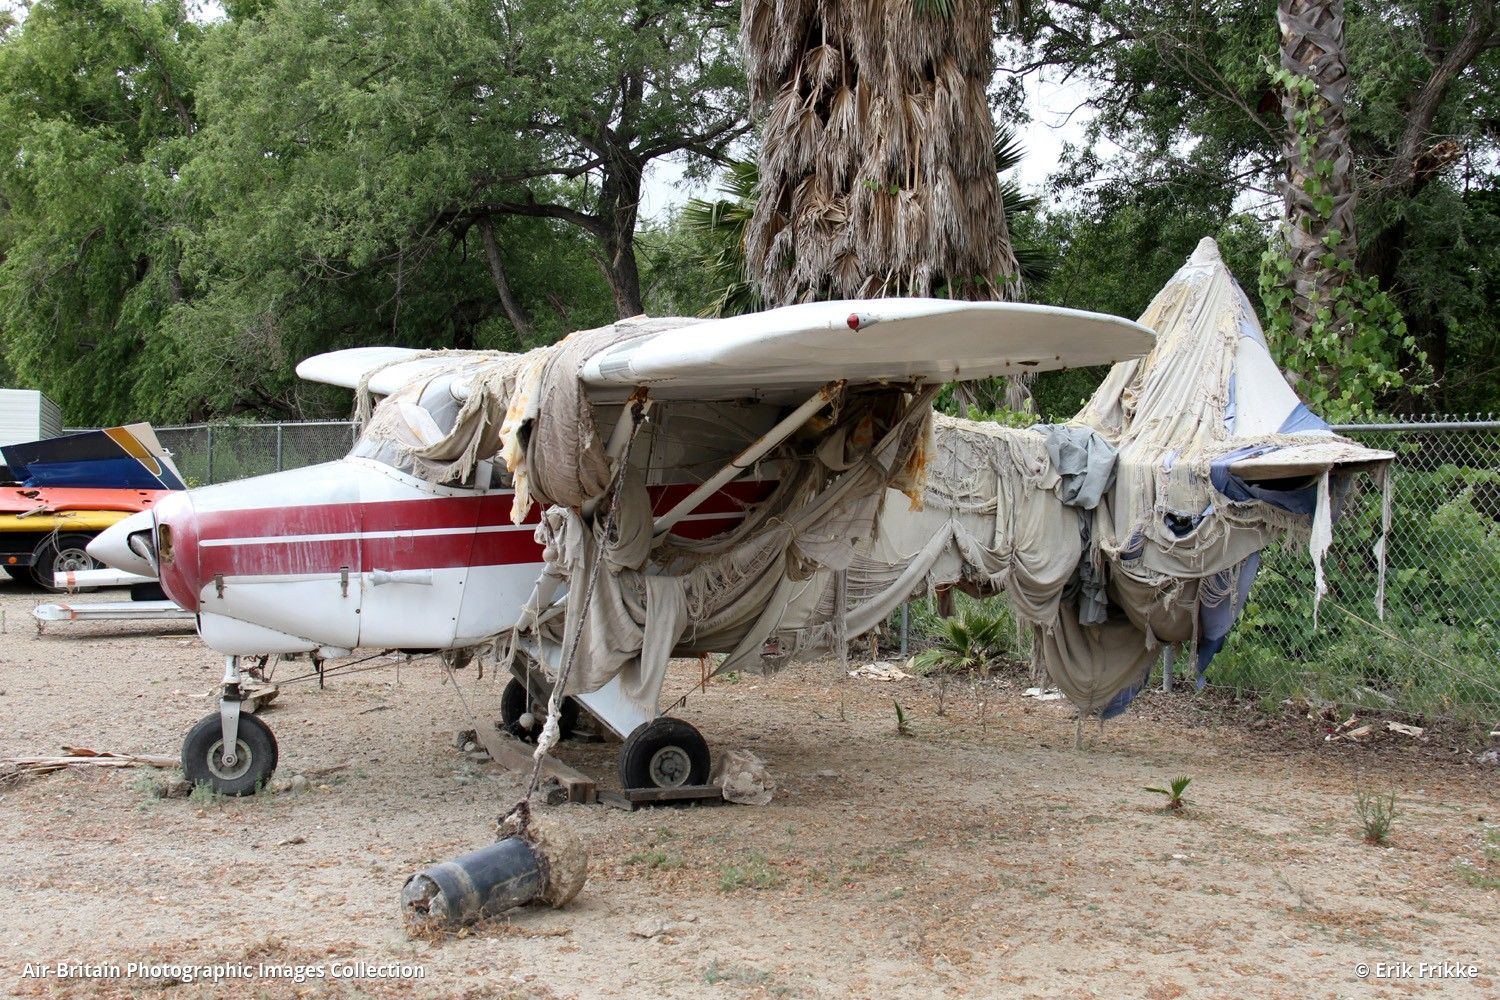 Aviation photographs of Piper PA-22 Tri-Pacer : ABPic